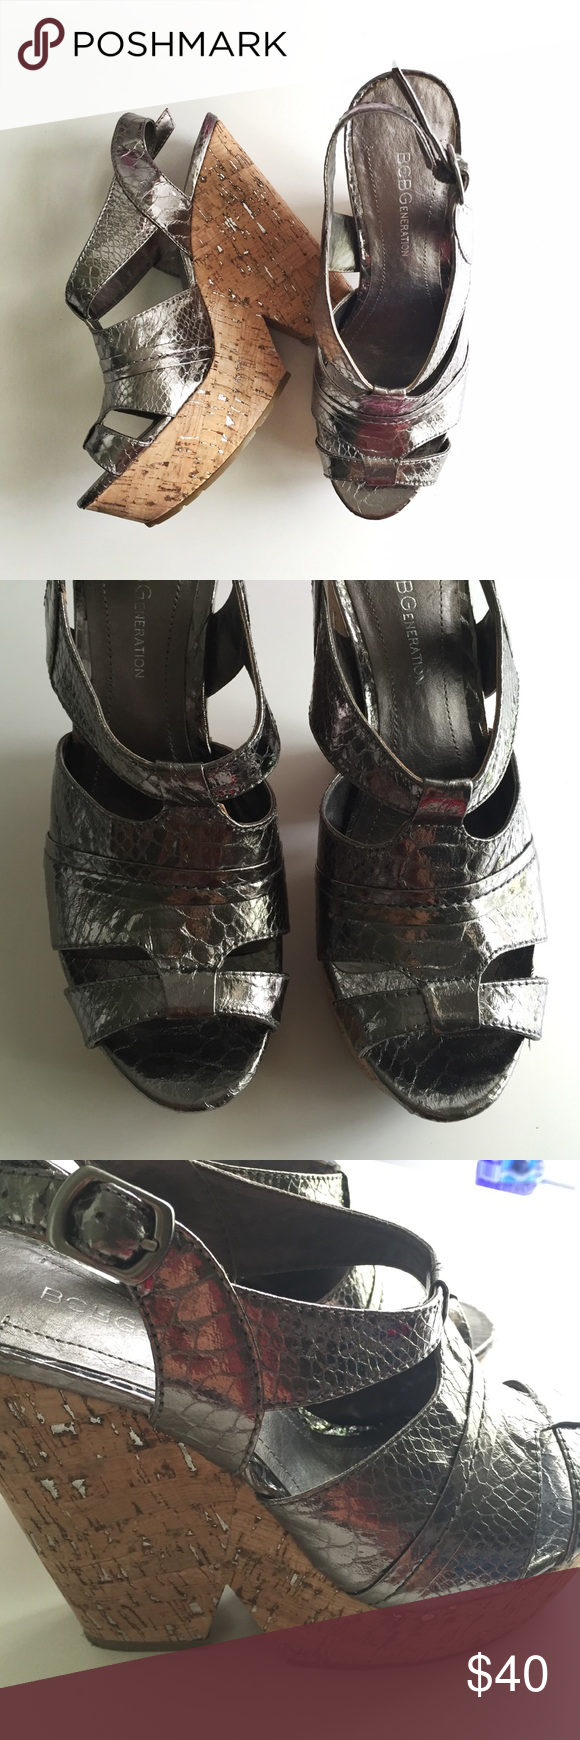 BCBG Silver Wedges Only worn once. Excellent condition!   ✔️ Accept all reasonable offers  No trades BCBGeneration Shoes Wedges